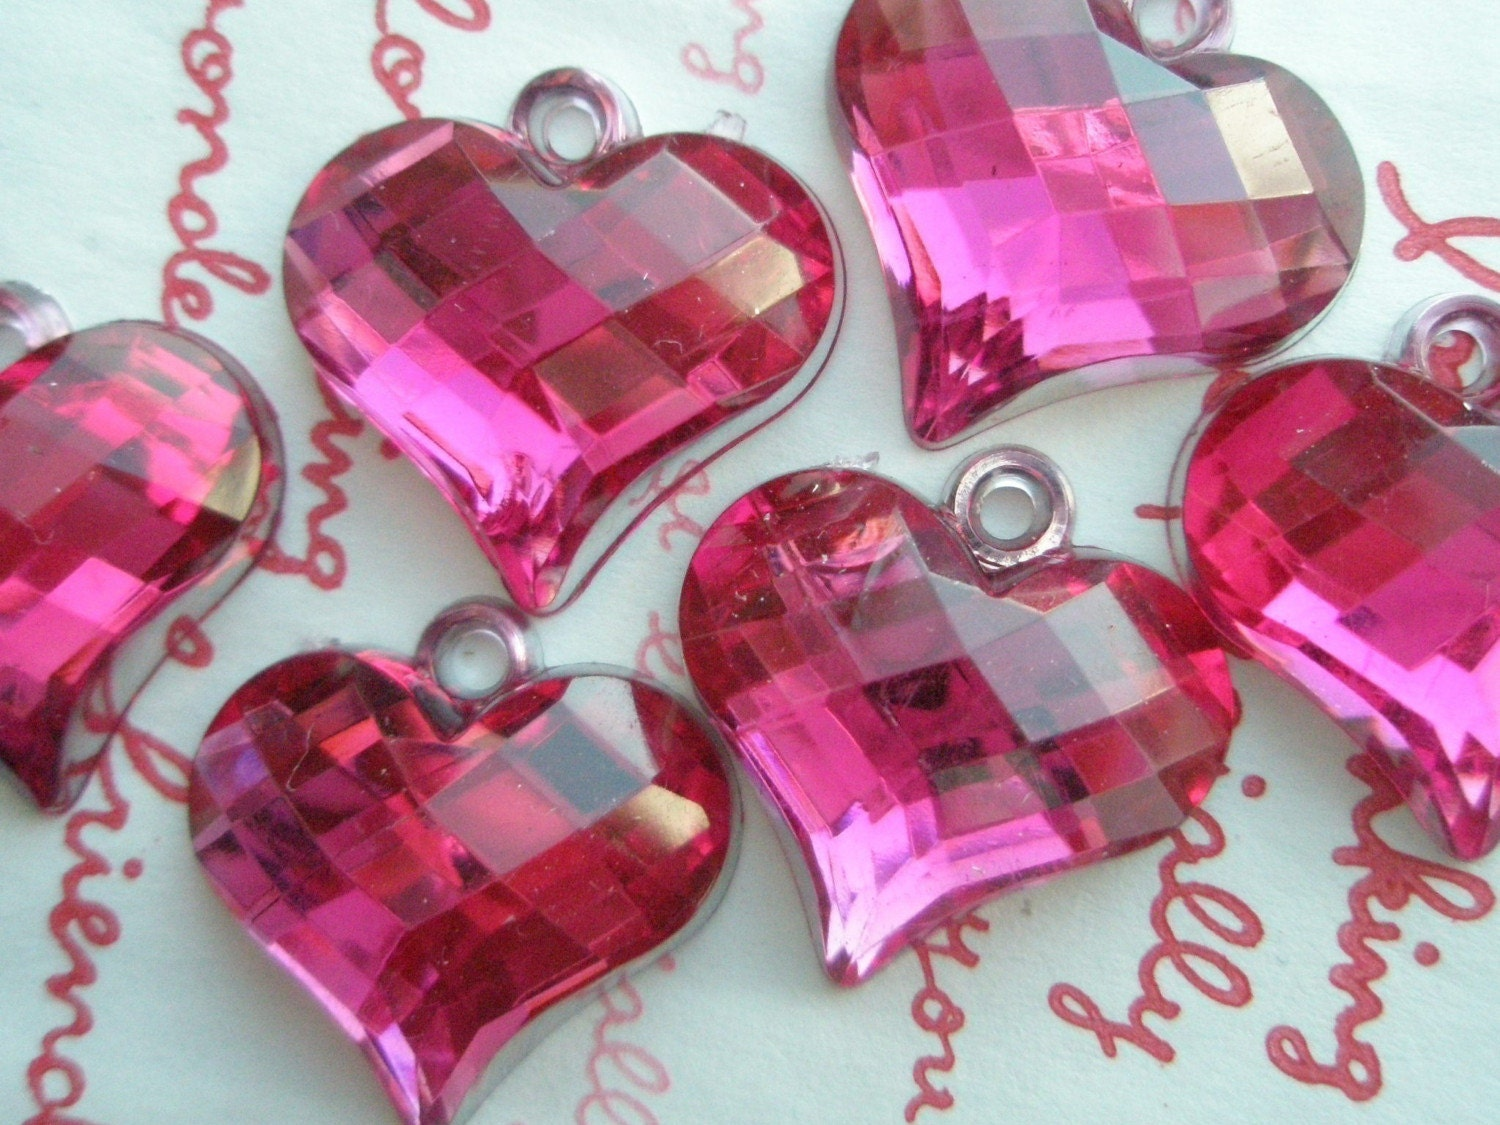 Clear HOT PINK chunky faceted Heart gem charms 6pcs